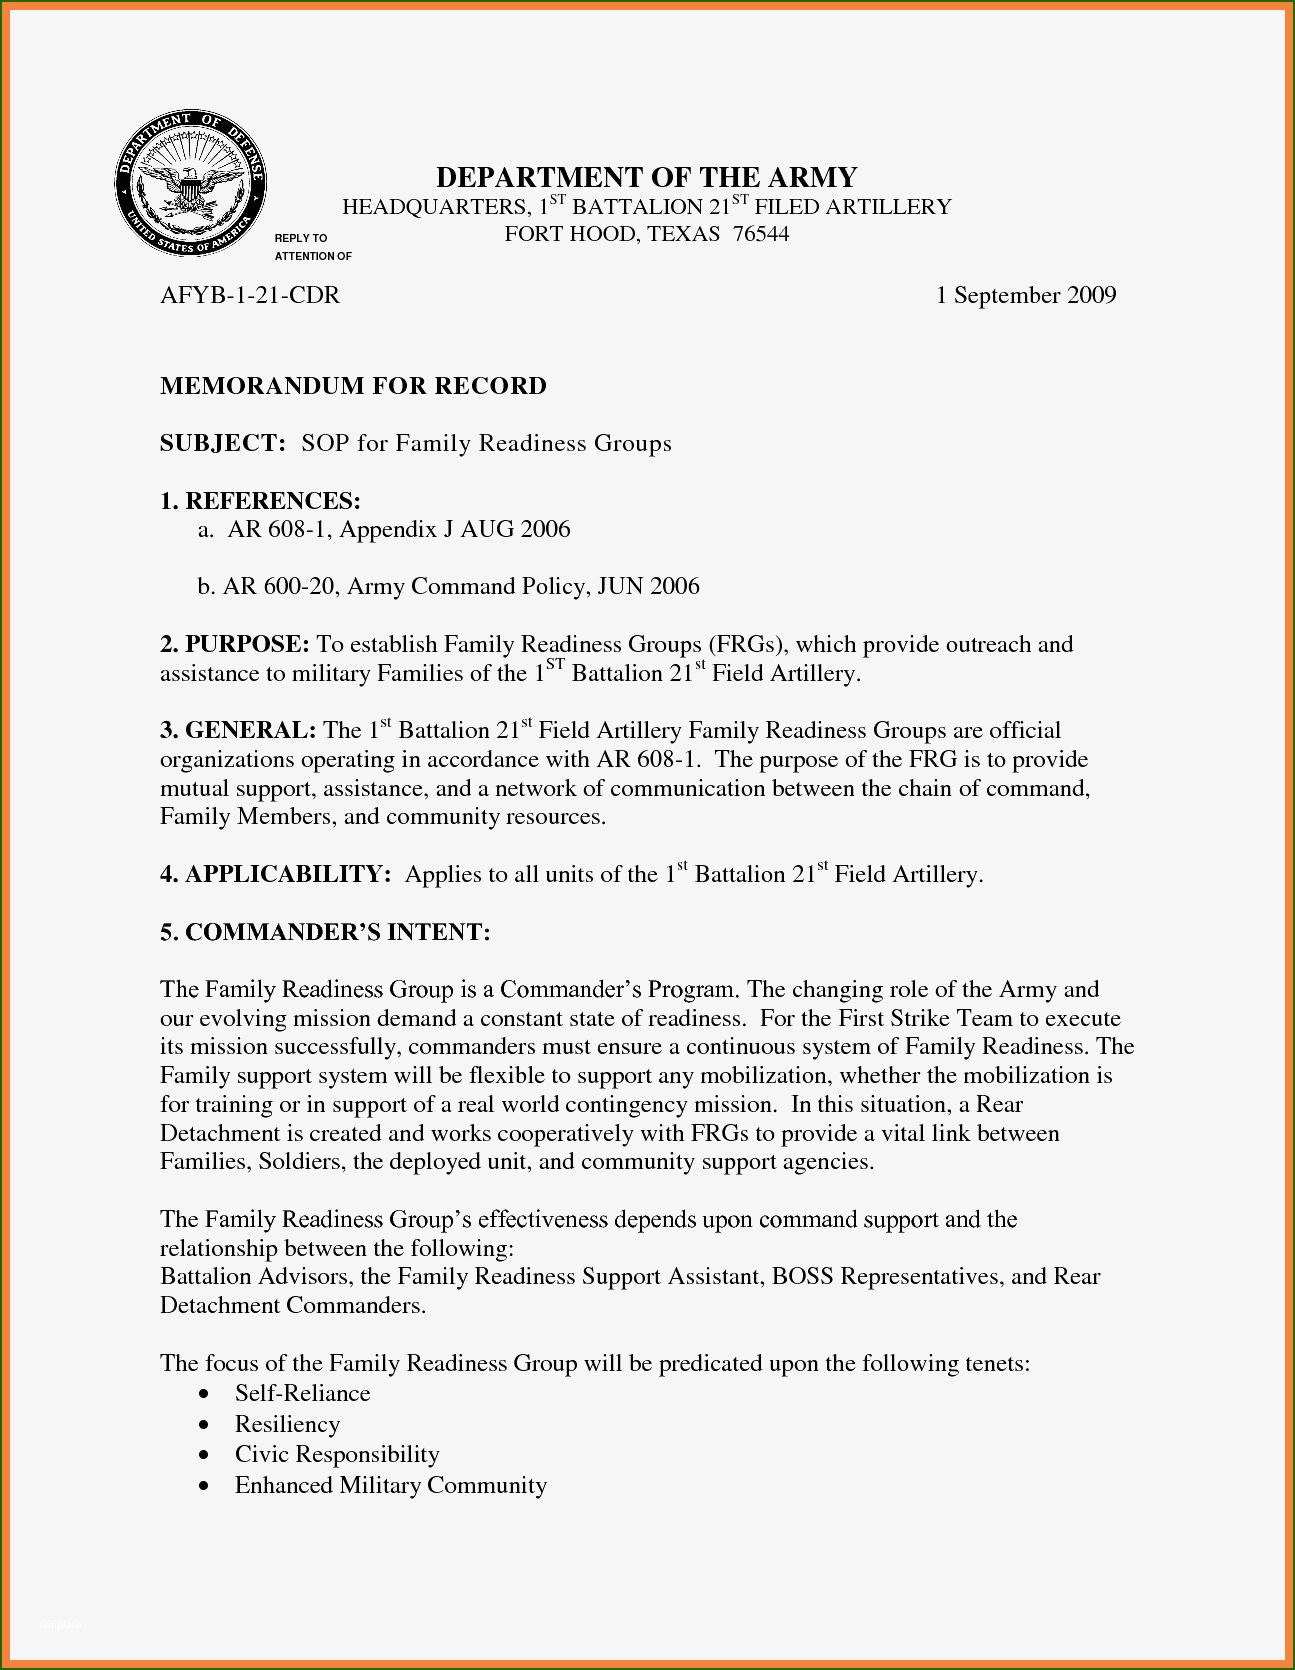 16 marvelous department of the army memorandum for record